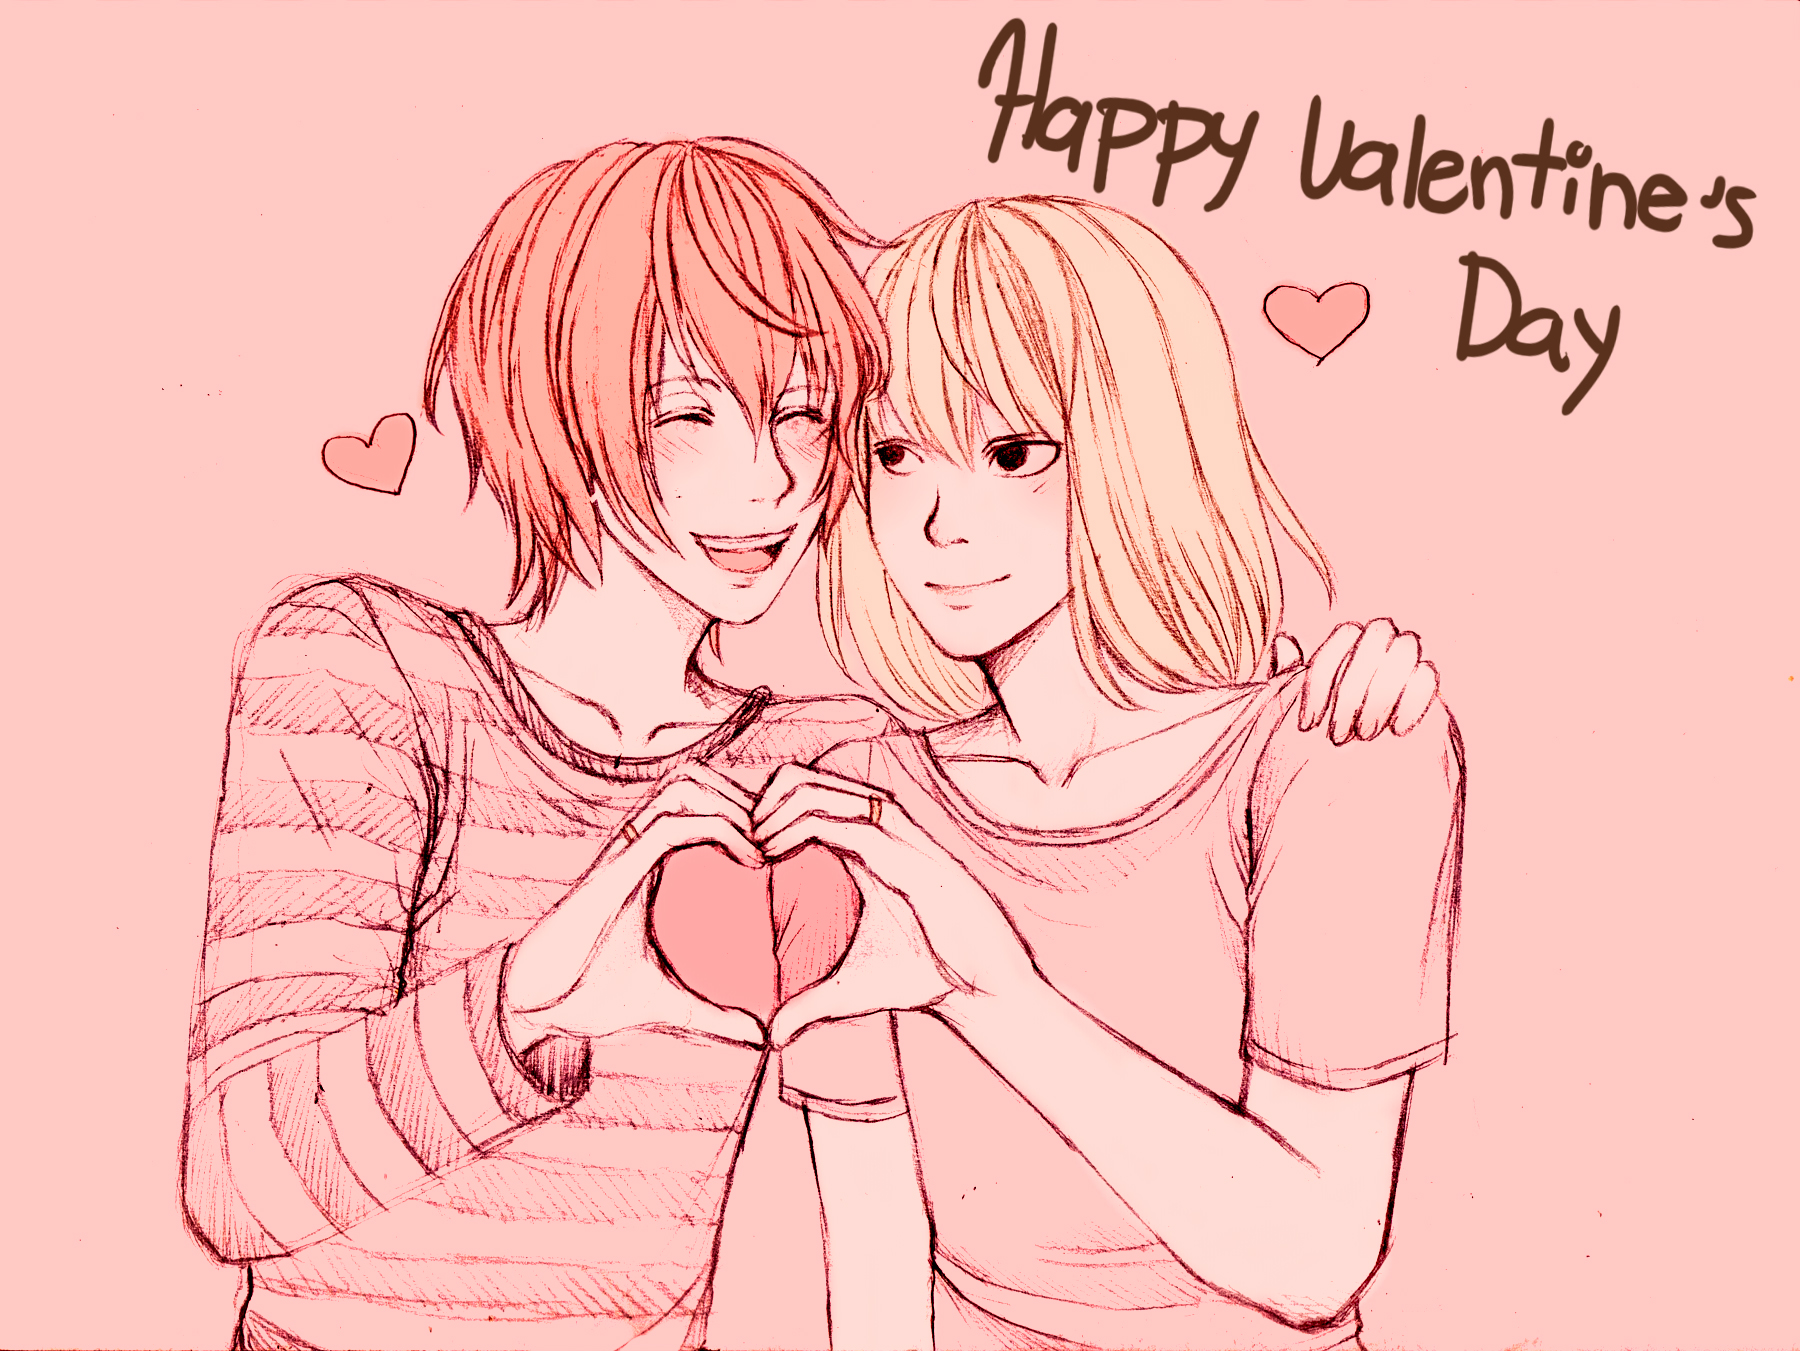 Anime Girl And Boy Kiss Valentines Day Wallpapers Wallpaper Cave